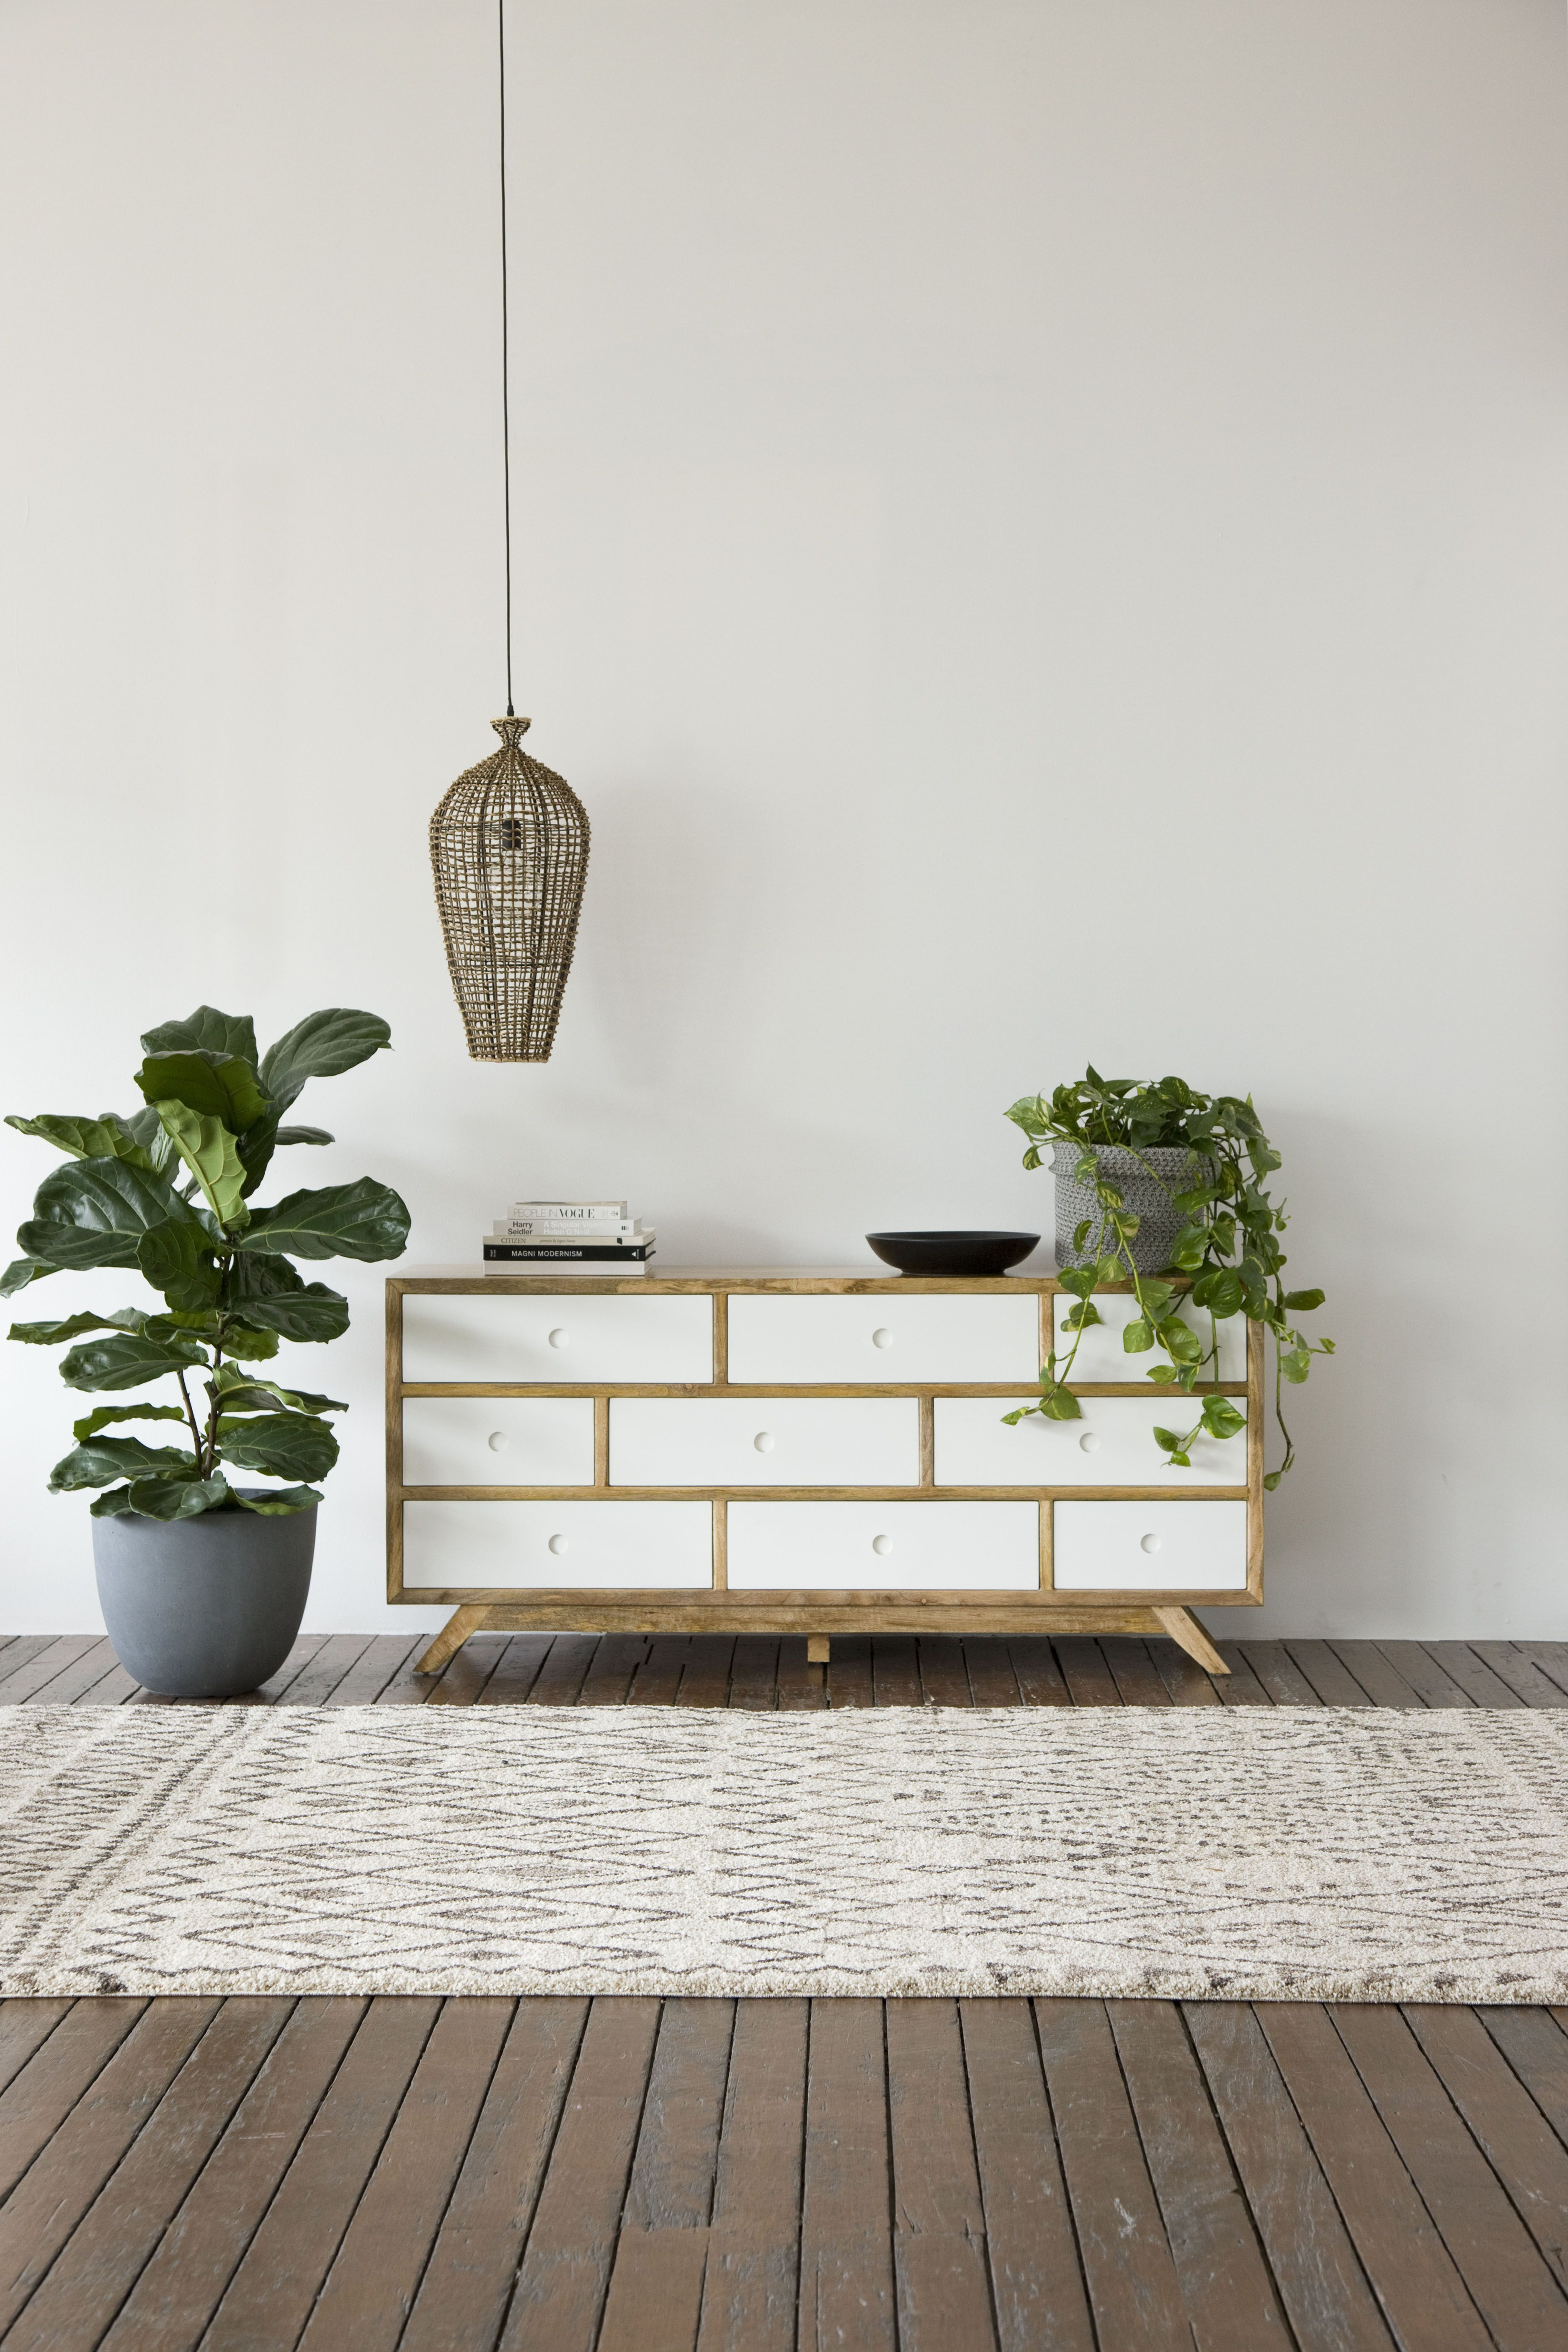 oz furniture design. Avoca Buffet | Spring Summer 15.16 Pinterest Buffet, Storage Shelves And Oz Furniture Design